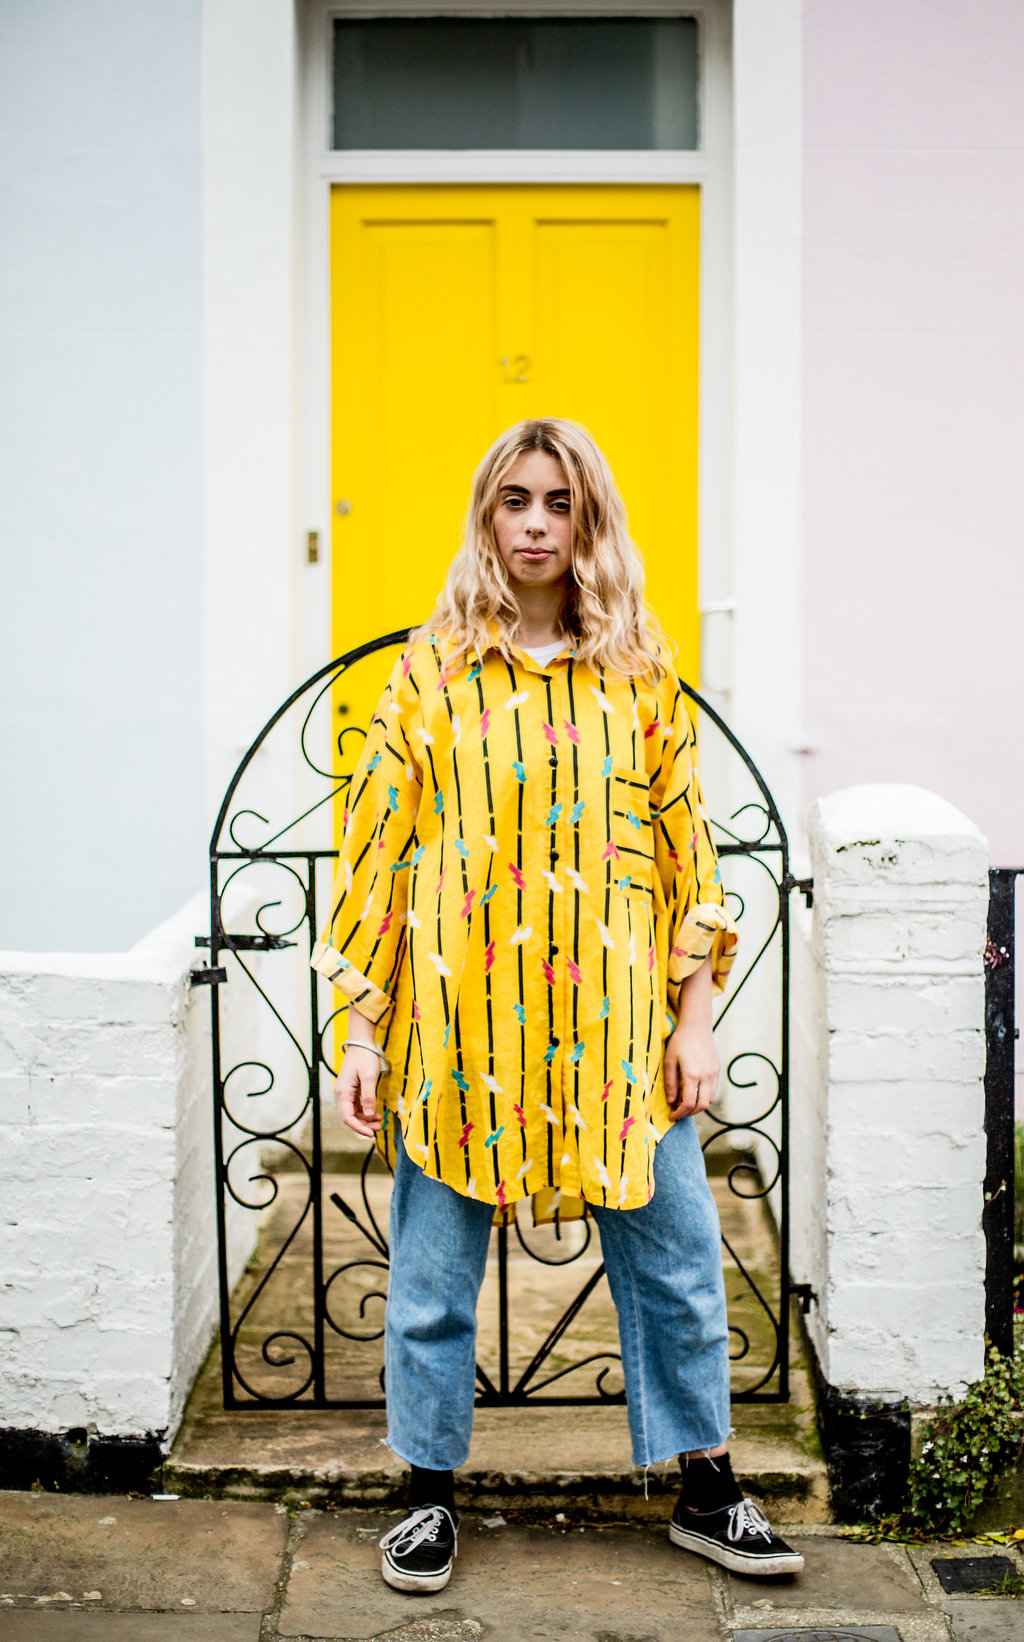 Thrifted outfit for a casual Saturday  // A Week Of Vibrant & Global Outfits With Francesca Willow From Ethical Unicorn on The Good Trade